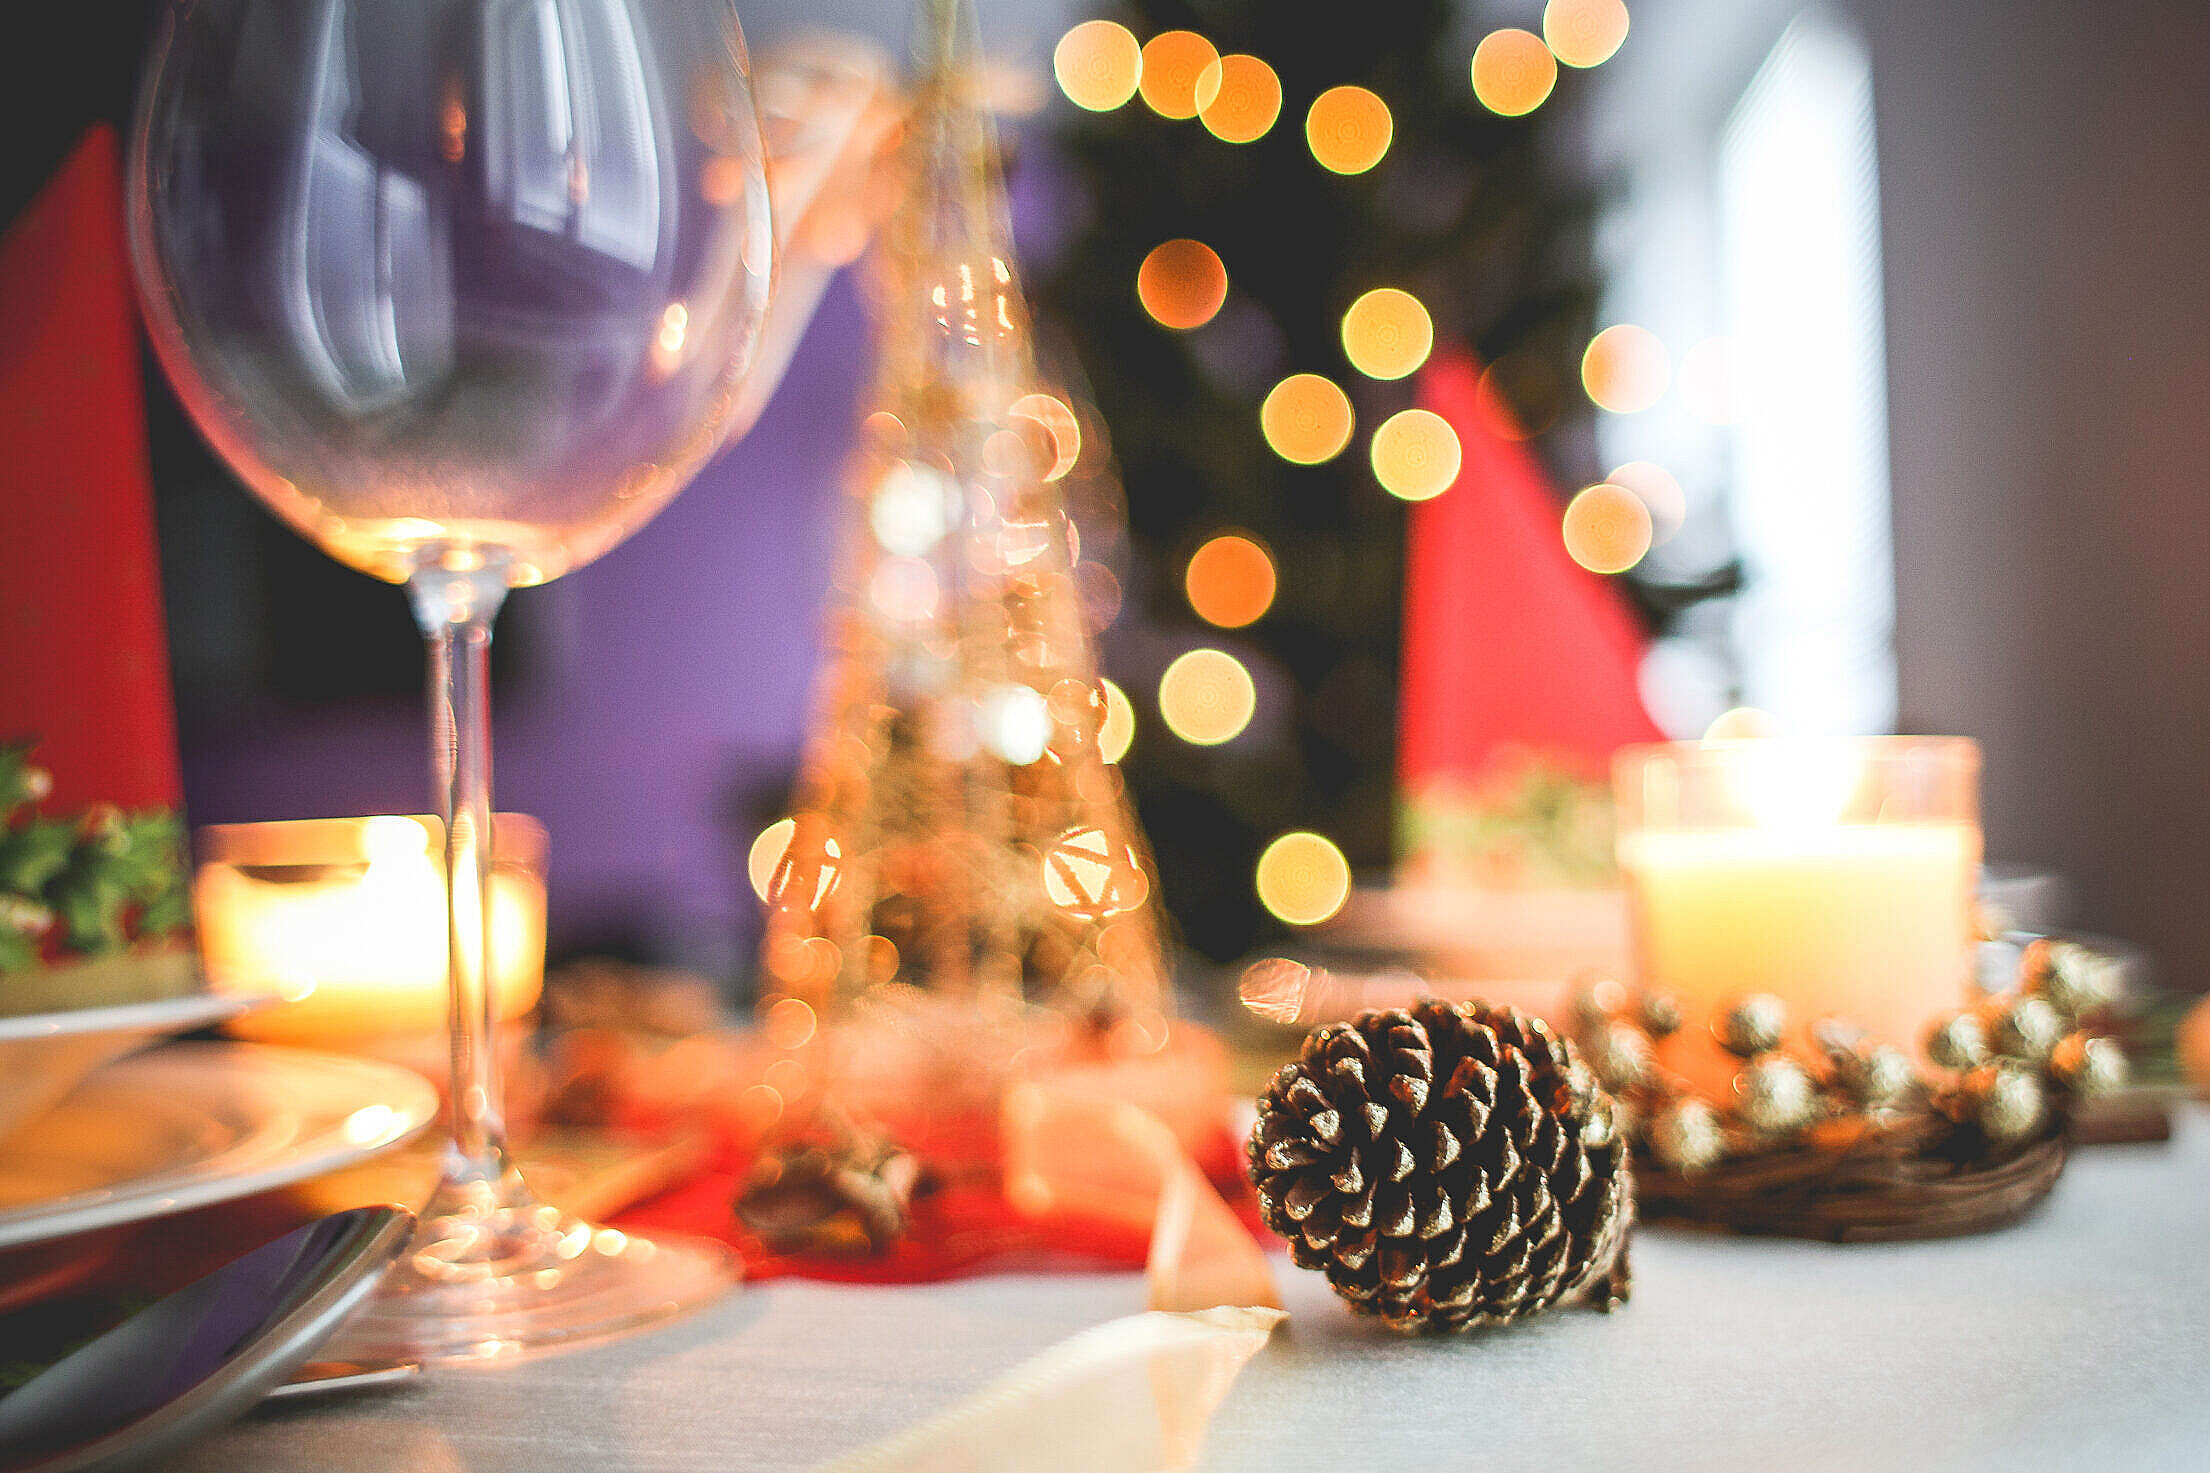 Christmas Table Decoration Close-Up Free Stock Photo